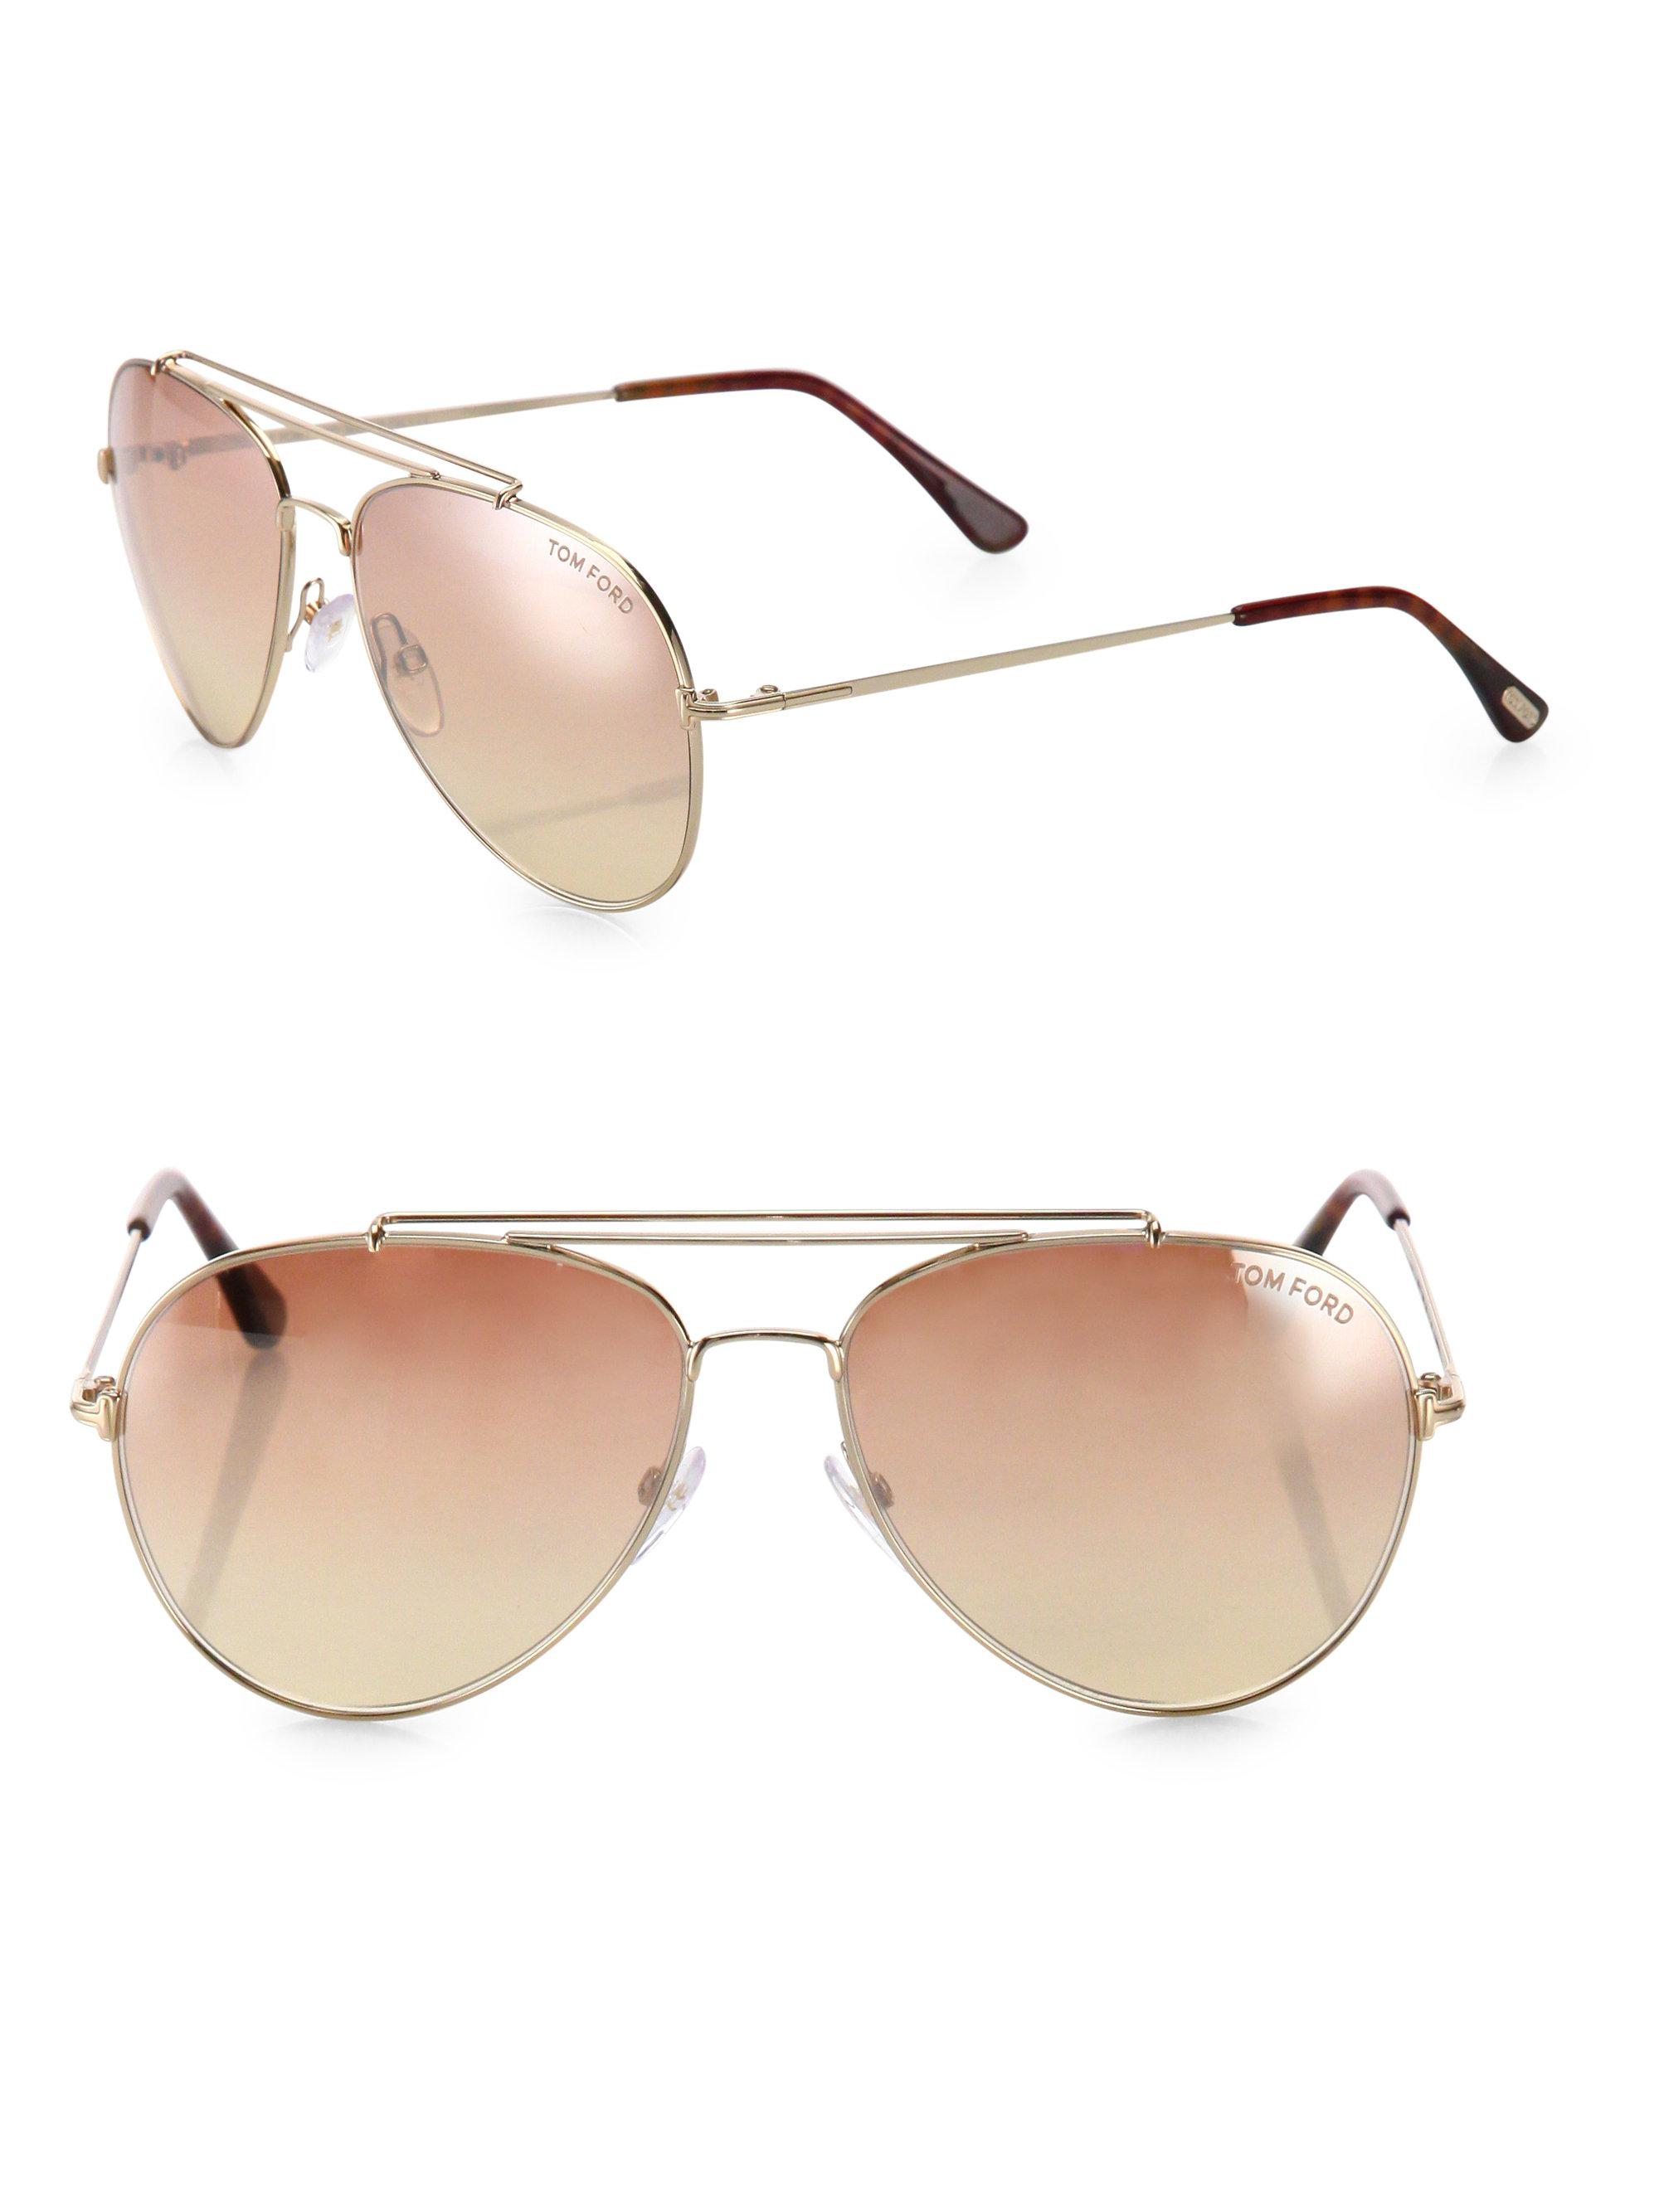 2937f89eff8 Tom Ford - Metallic Women s Indiana 58mm Mirrored Aviator Sunglasses - Gold  - Lyst. View fullscreen